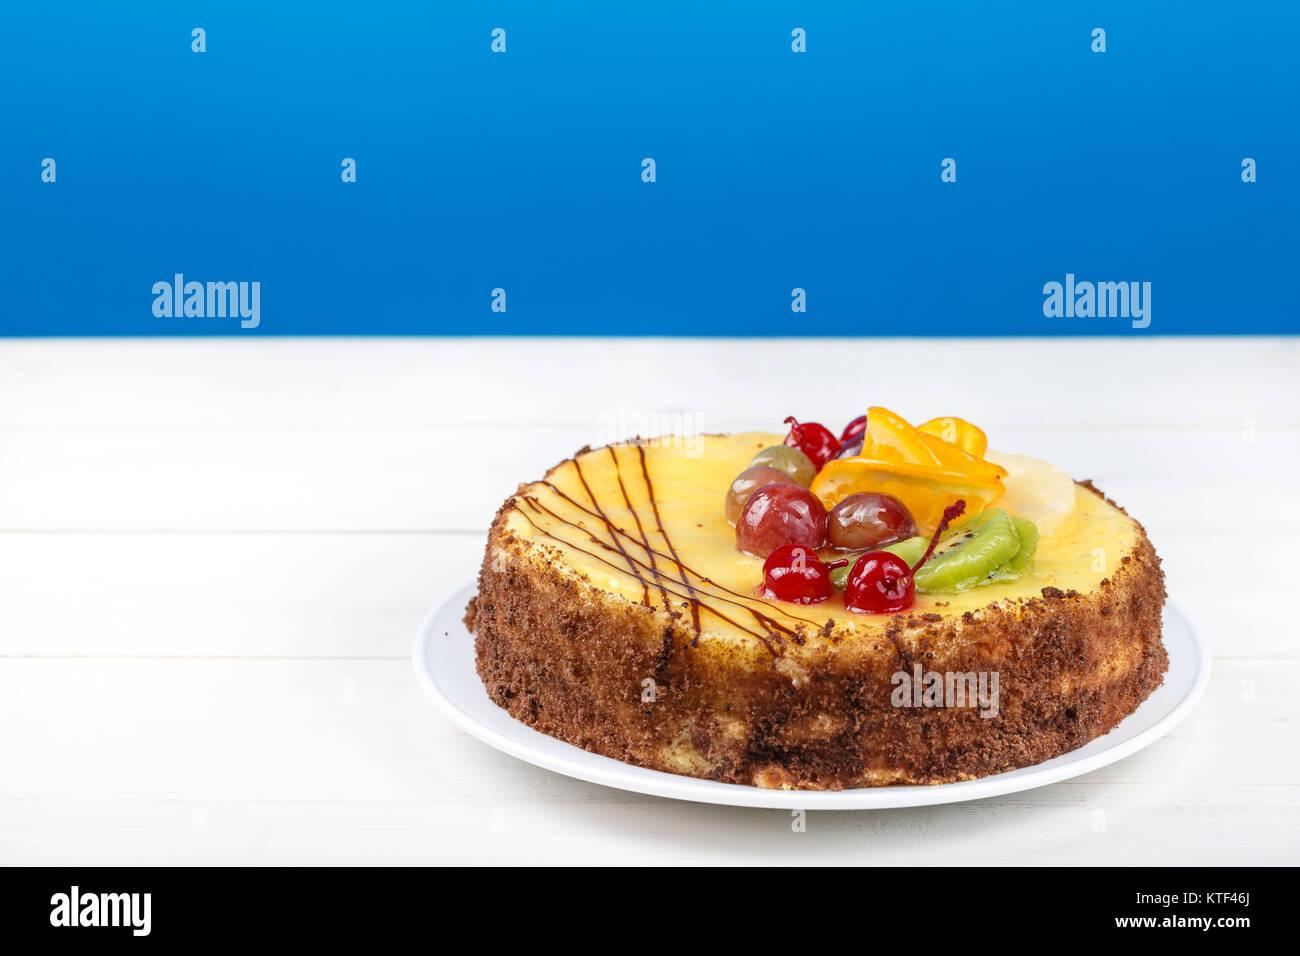 delicious birthday cake, cream cake with cherries, oranges and chocolate, space for text - Stock Image